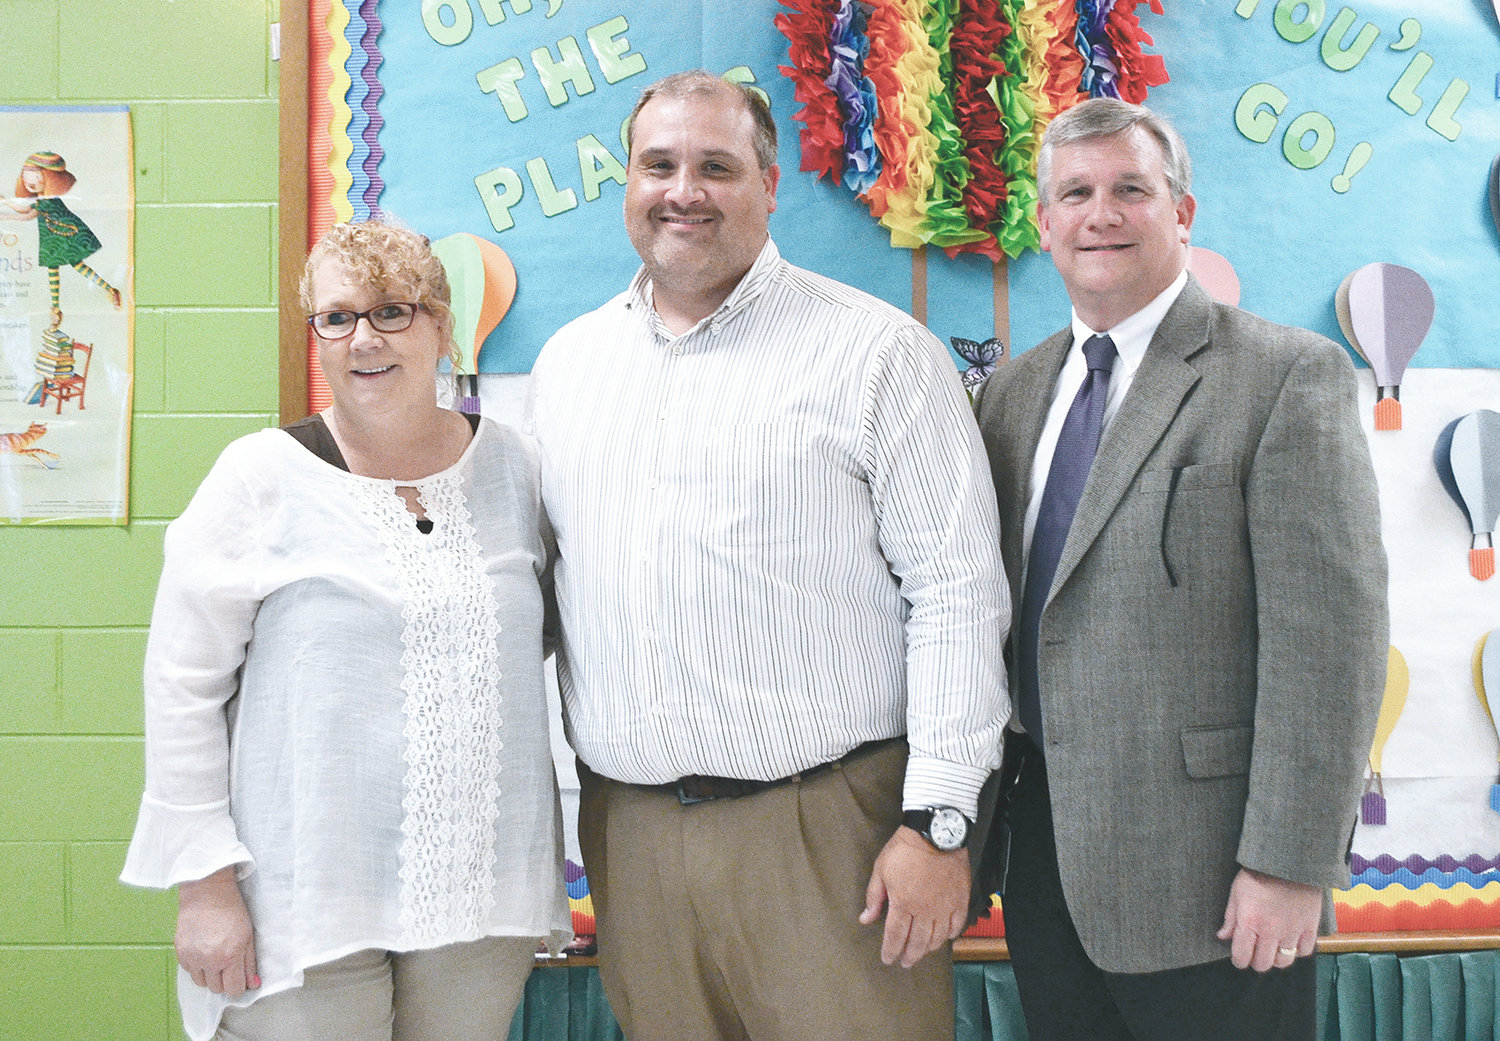 From left to right, Parrish Mayor Heather Hall, Parrish Elementary Principal Thomas Kyzer and Walker County Schools Superintendent Dr. Joel Hagood gather after the school board's vote Tuesday to add seventh grade to Parrish Elementary.